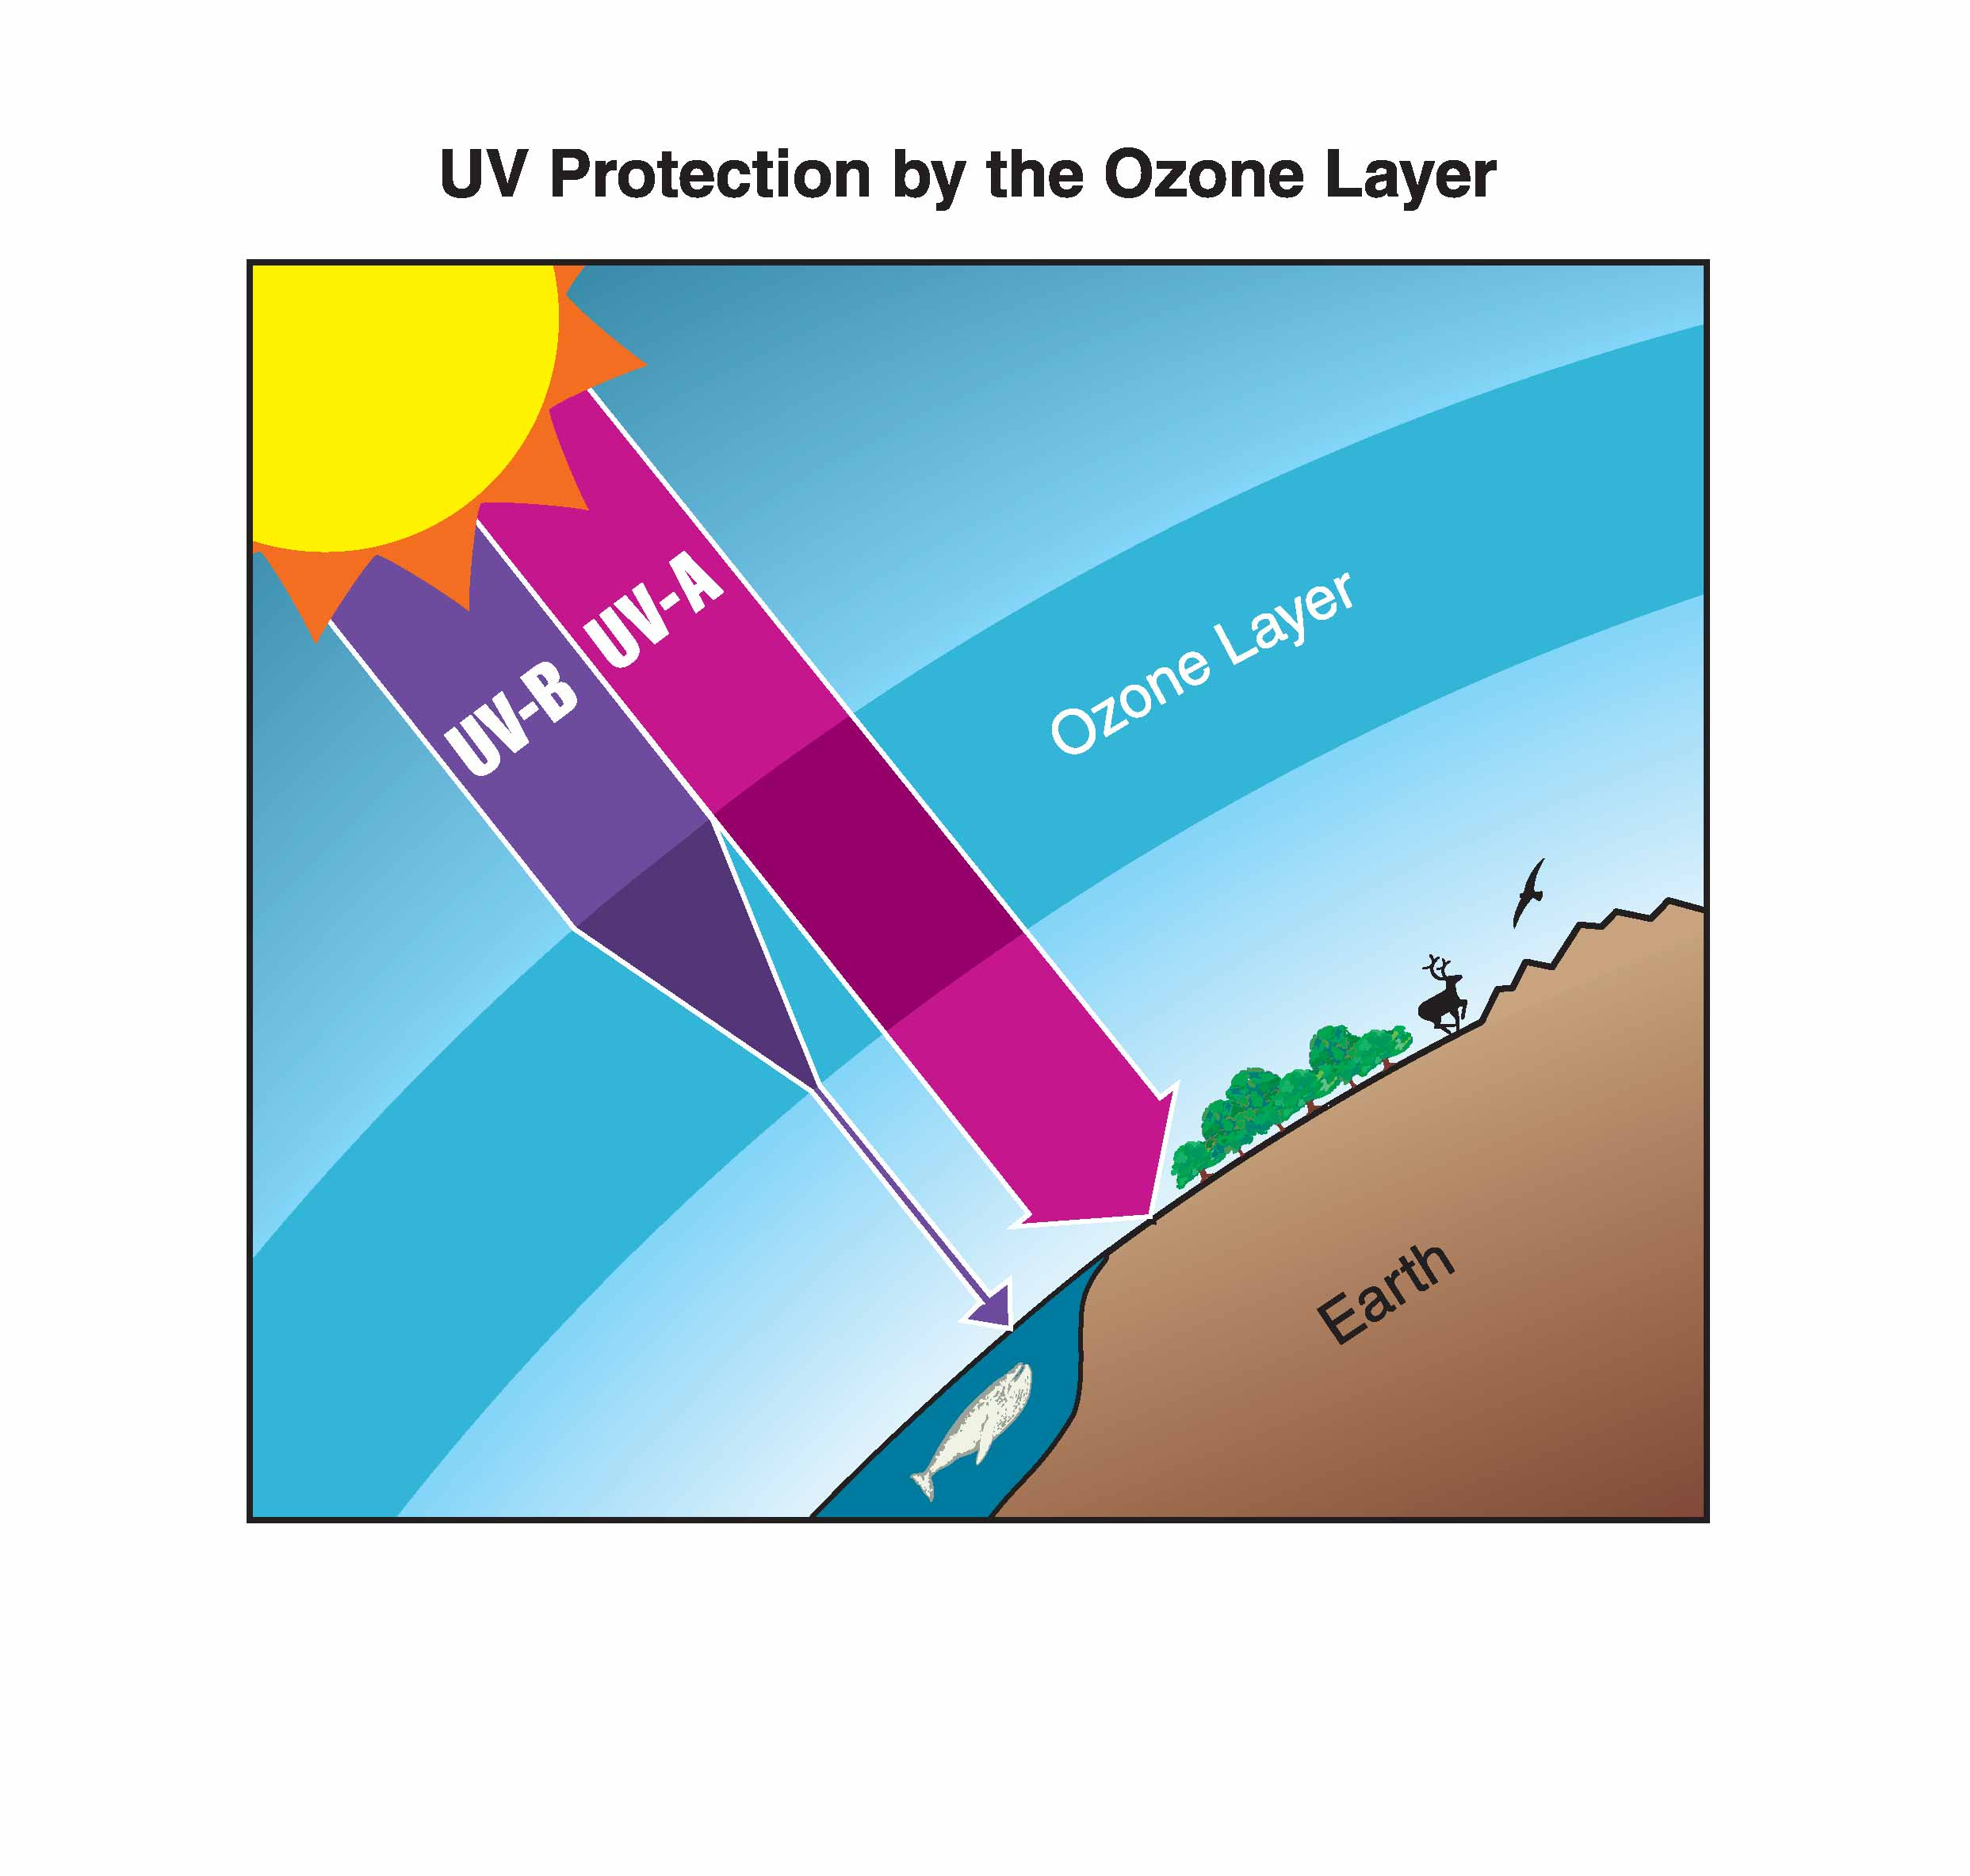 utra violet radiation essay Ultraviolet radiation is the electromagnetic radiation that has wavelengths in the range between 4000 angstrom units (å), the wavelength of violet light, and 150 å, the length of.